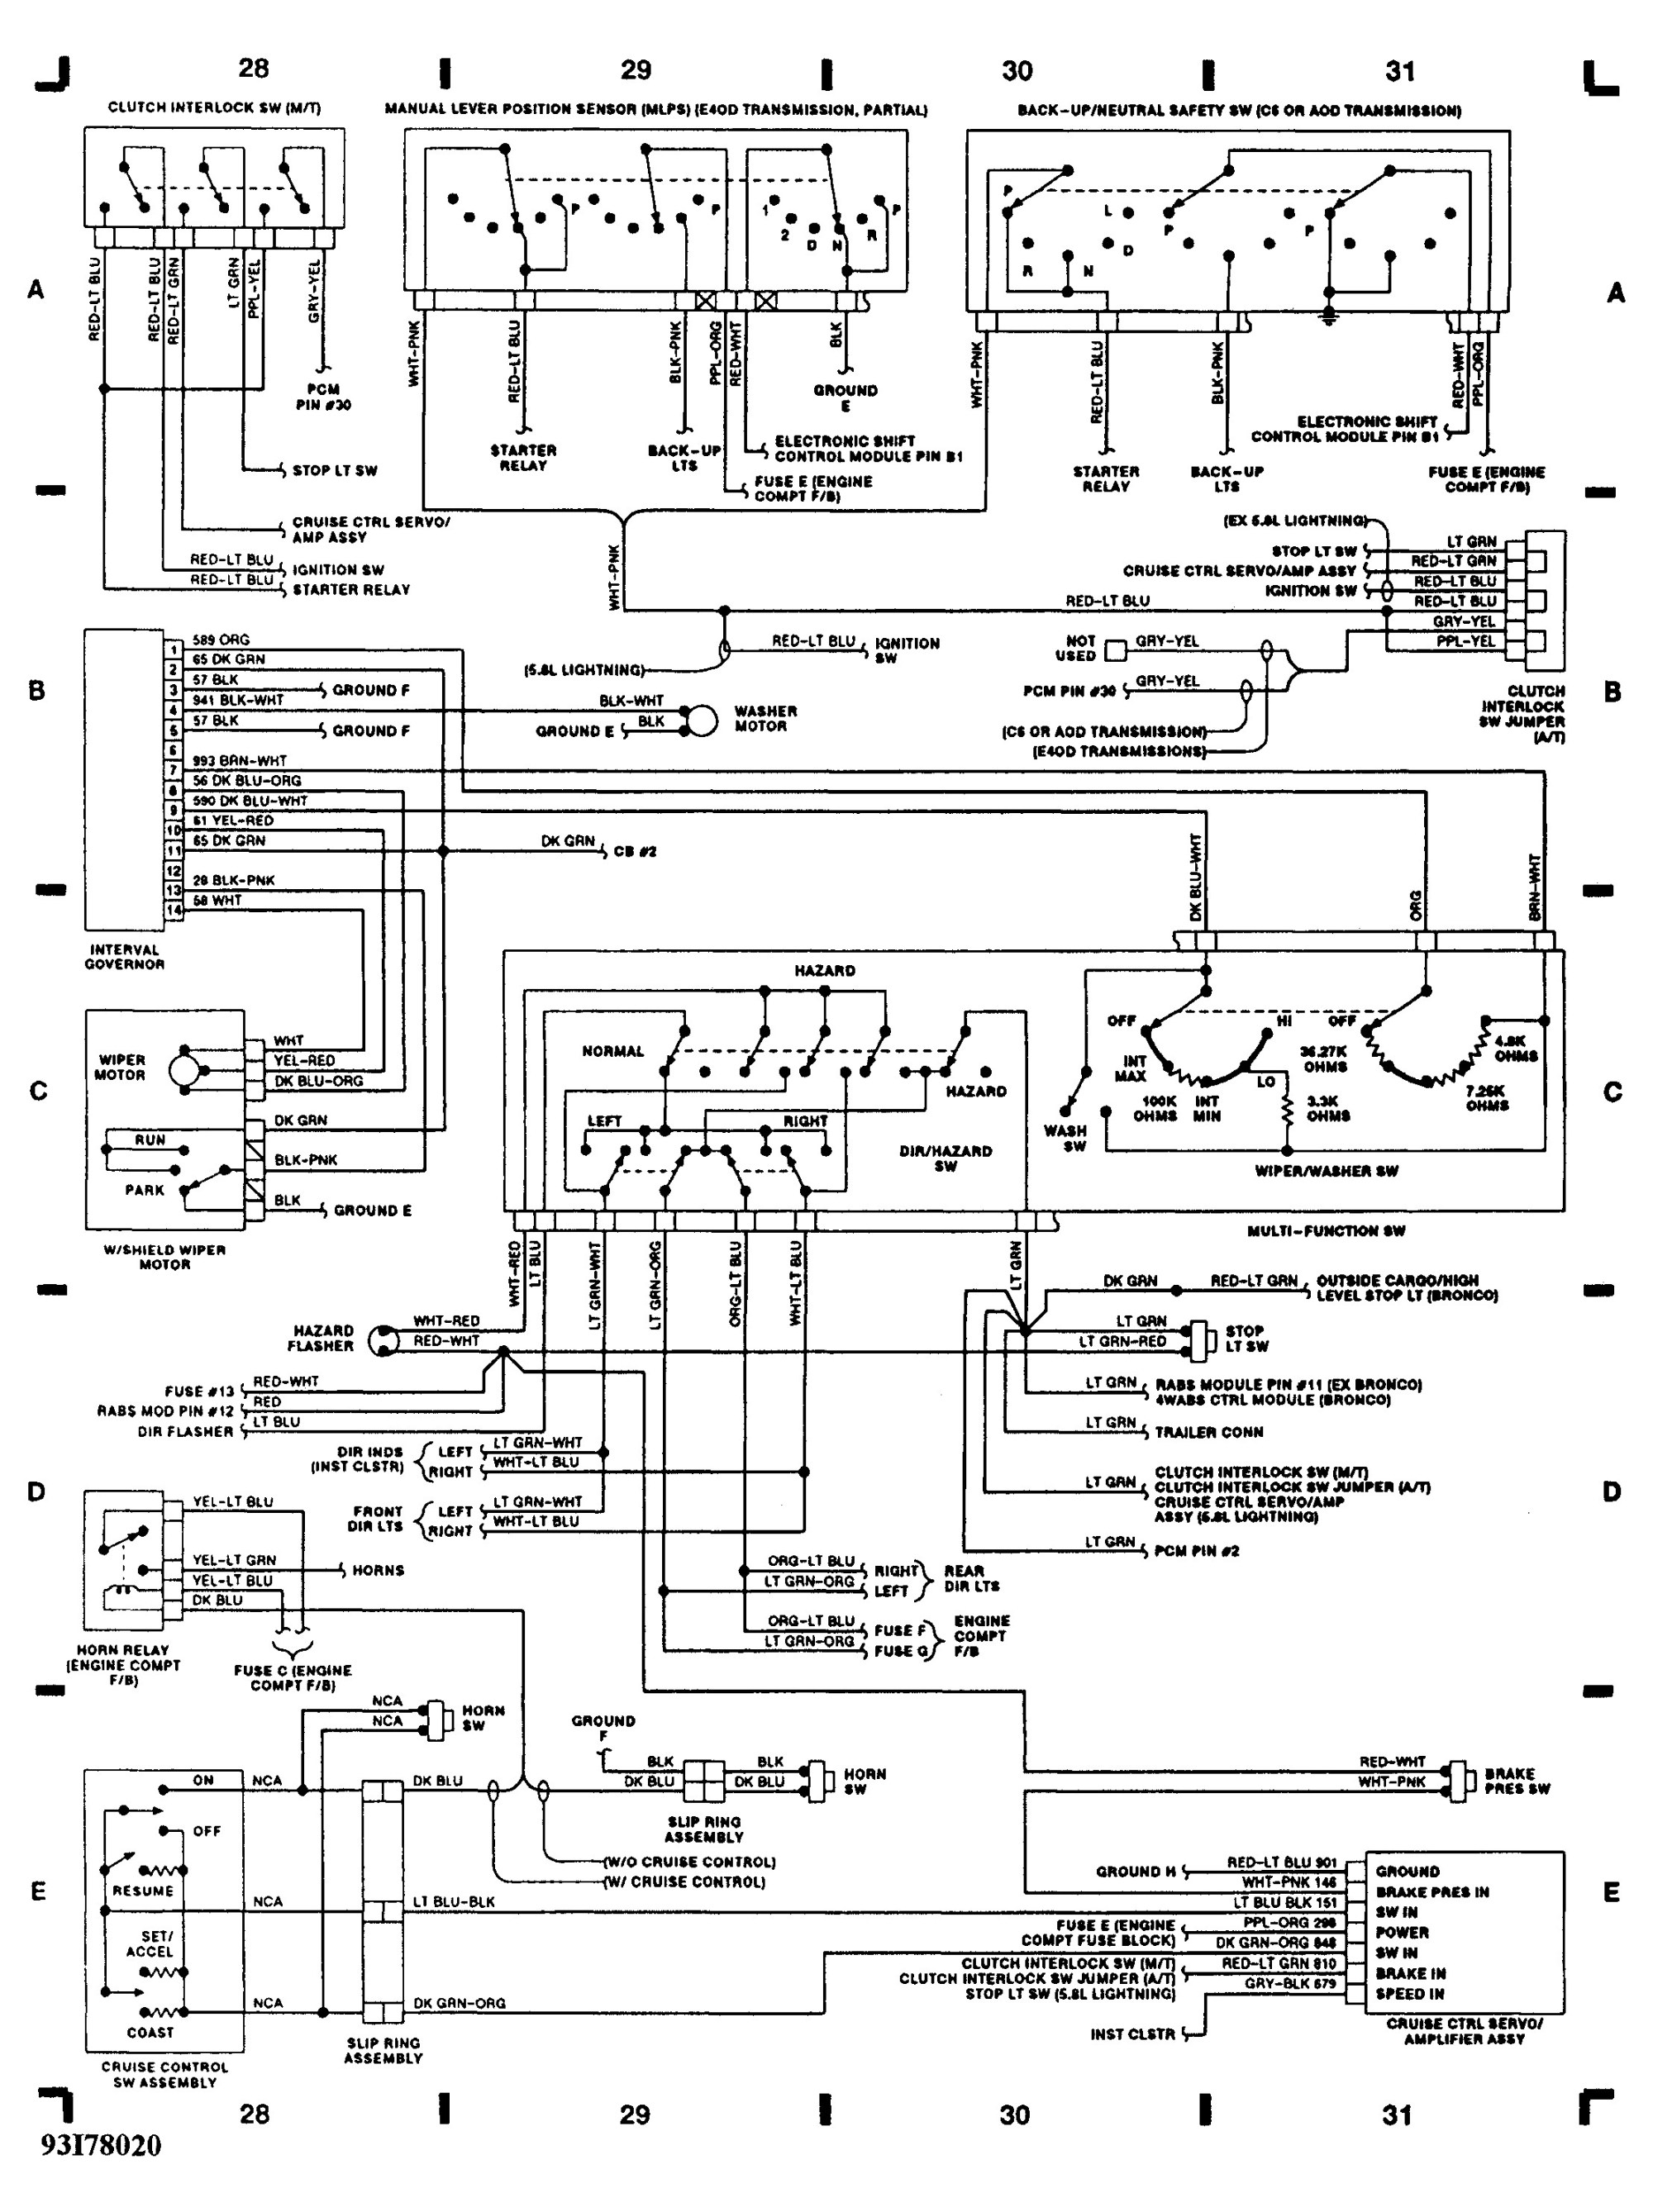 hight resolution of ficm wiring diagram wiring diagram mega 2006 ford f350 6 0 diesel wiring diagram 6 0 powerstroke